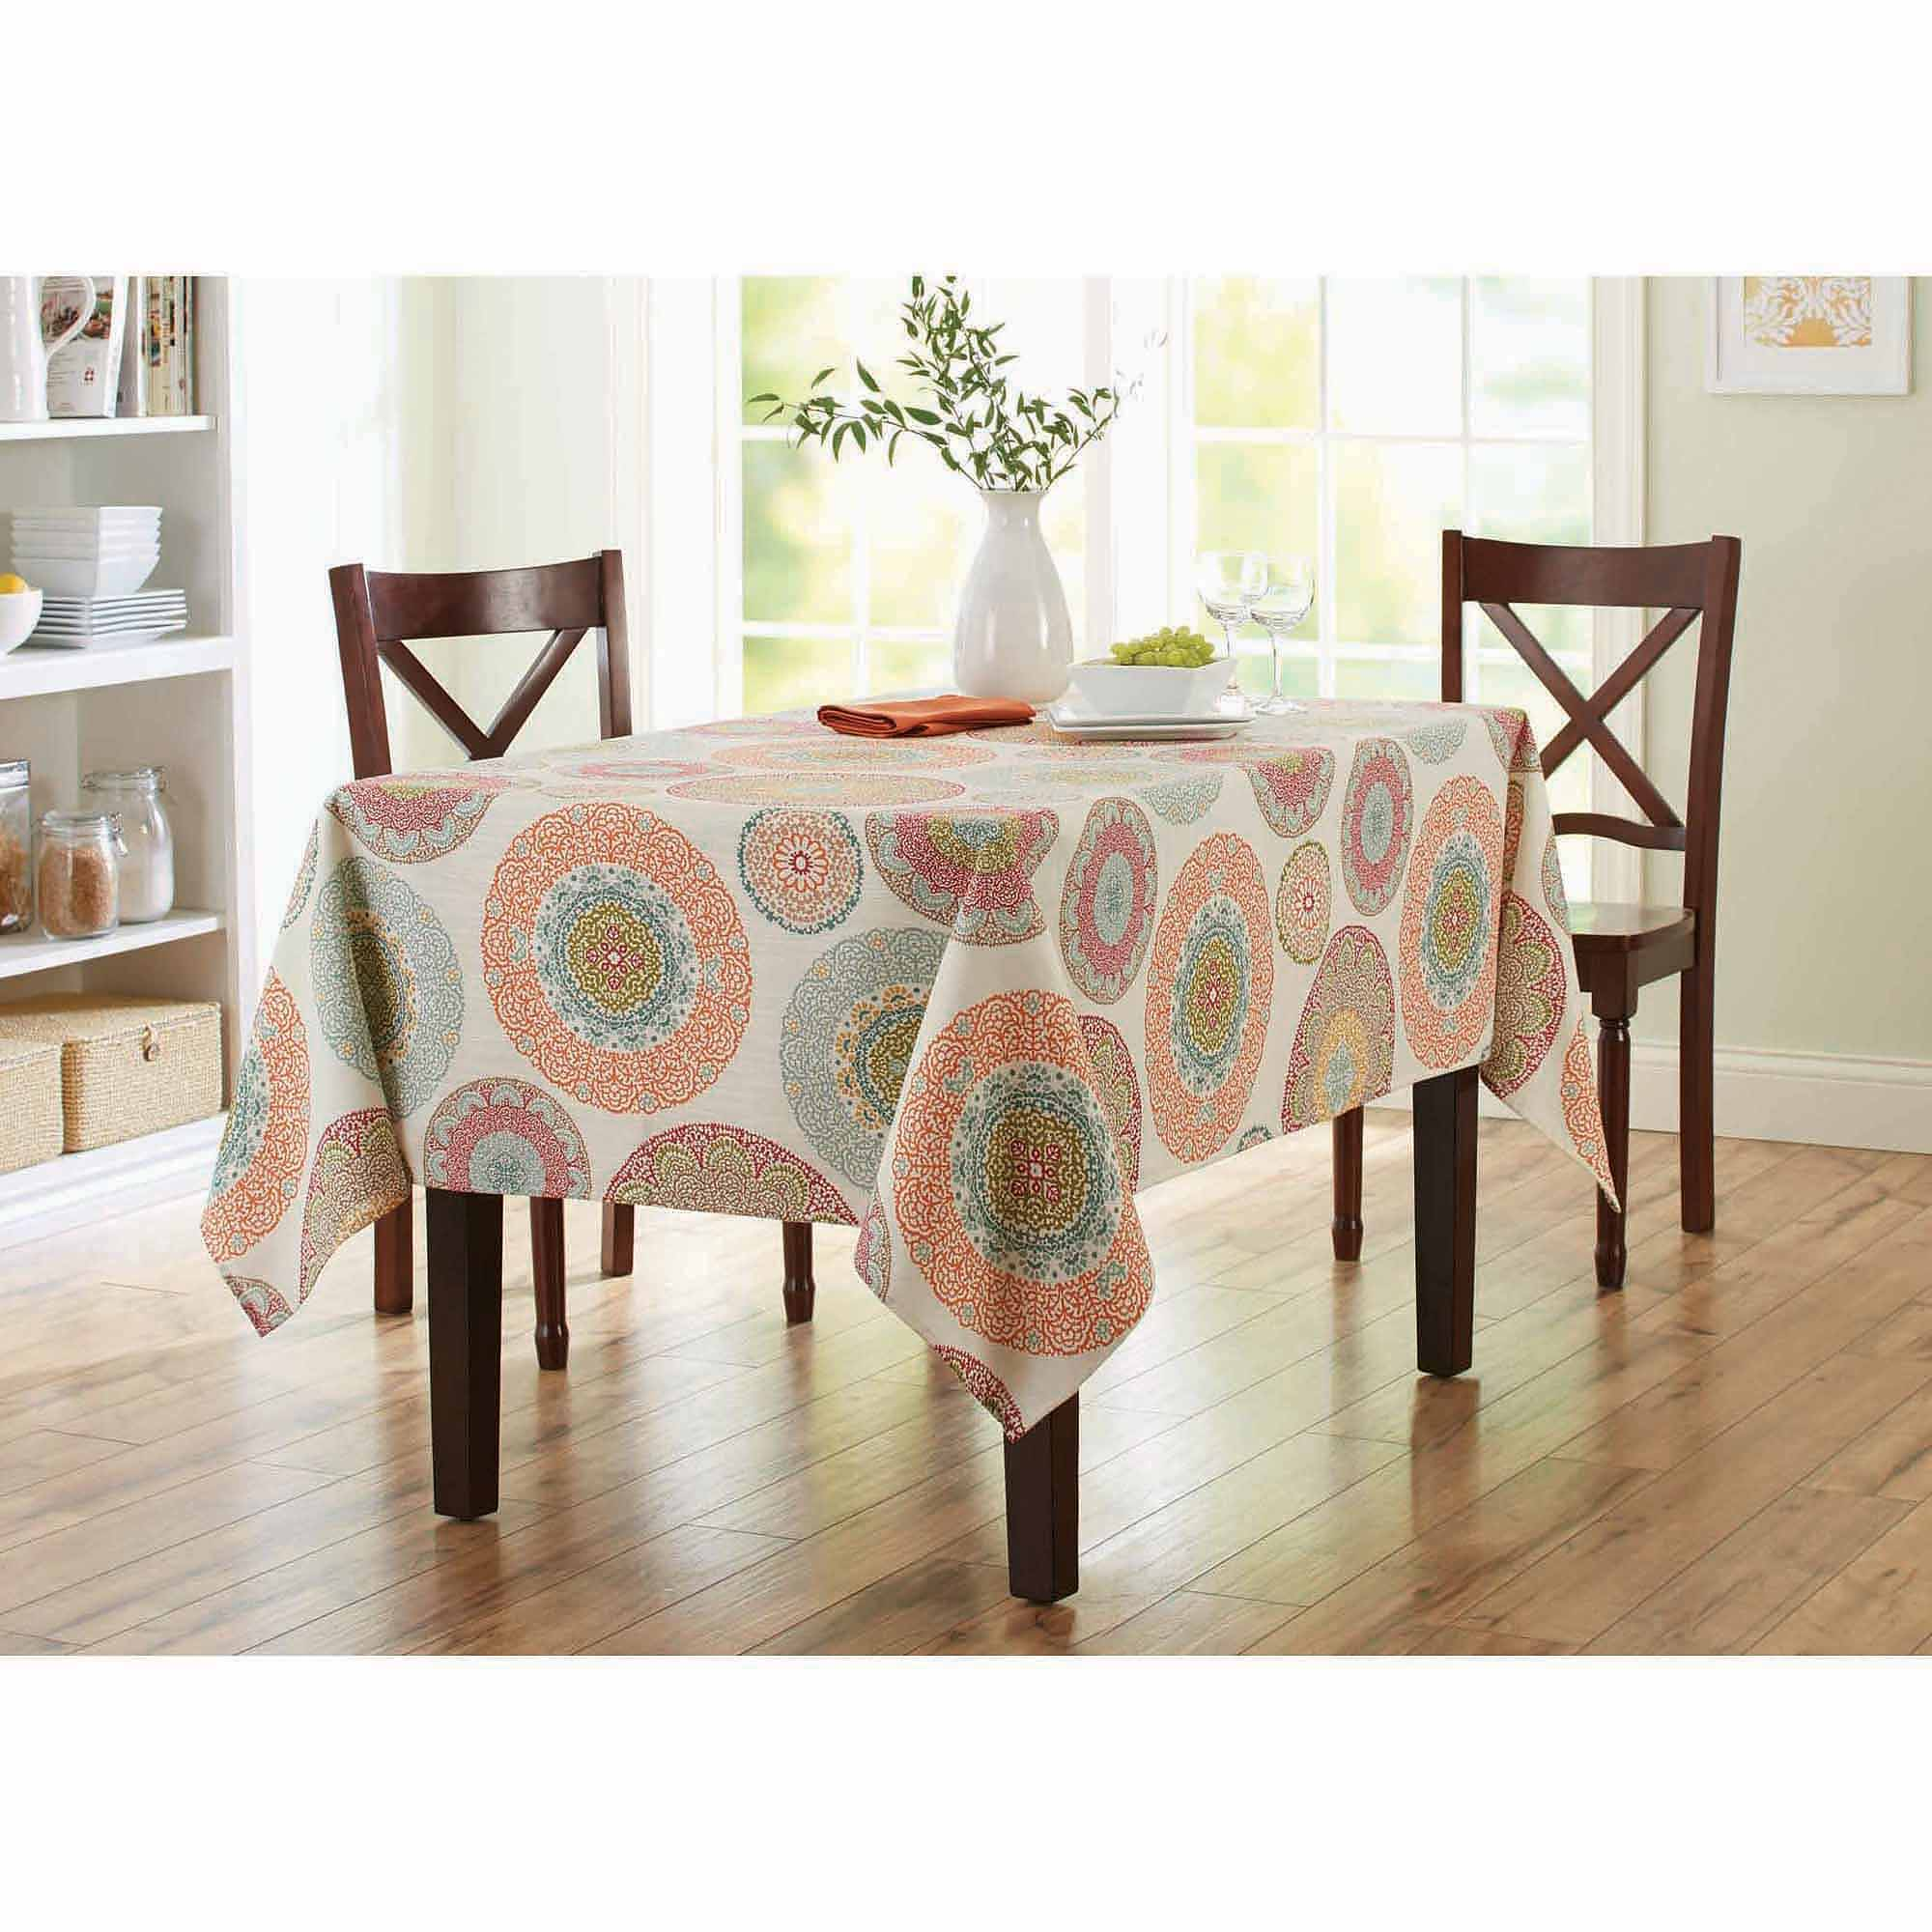 better homes gardens lace medallion tablecloth round accent white patio table low coffee with drawers west elm topper patterns sewing lawn furniture battery standard lamp high